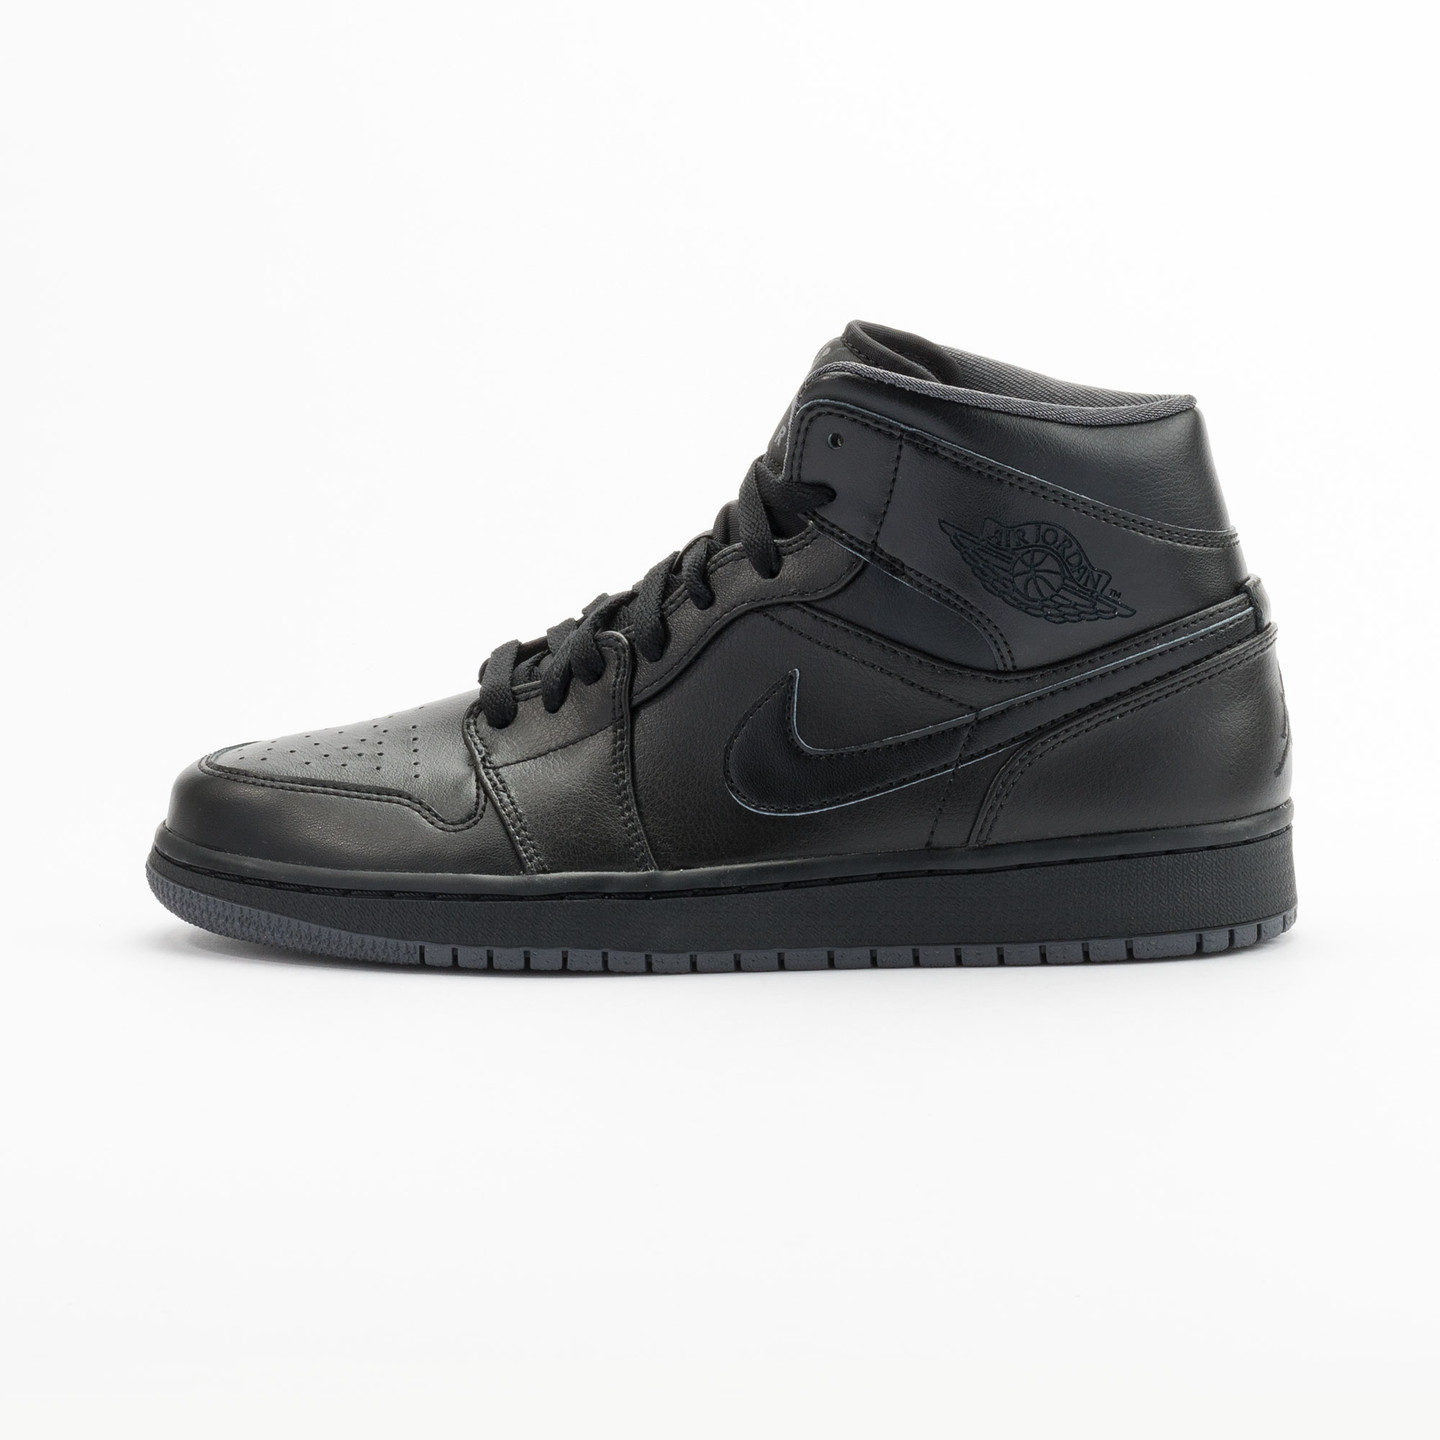 Nike Air Jordan 1 Mid Black / Dark Grey 554724-021-42.5